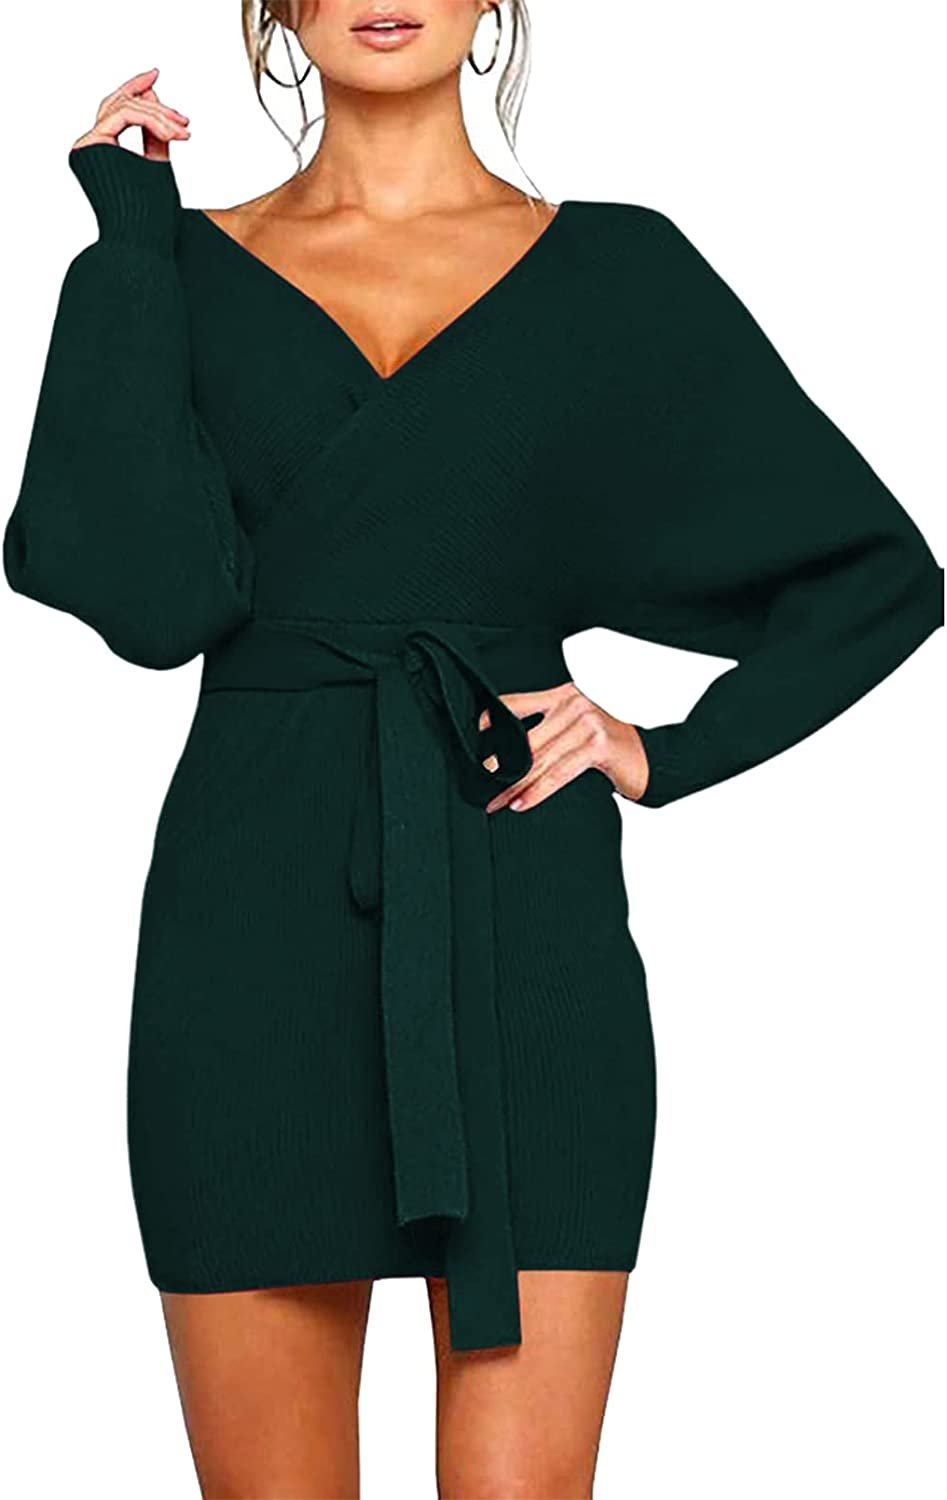 Popular shop is the lowest price challenge Cutiefox Women's Sexy Deep V Neck Batwing Dress B Sleeve Sweater Sale special price